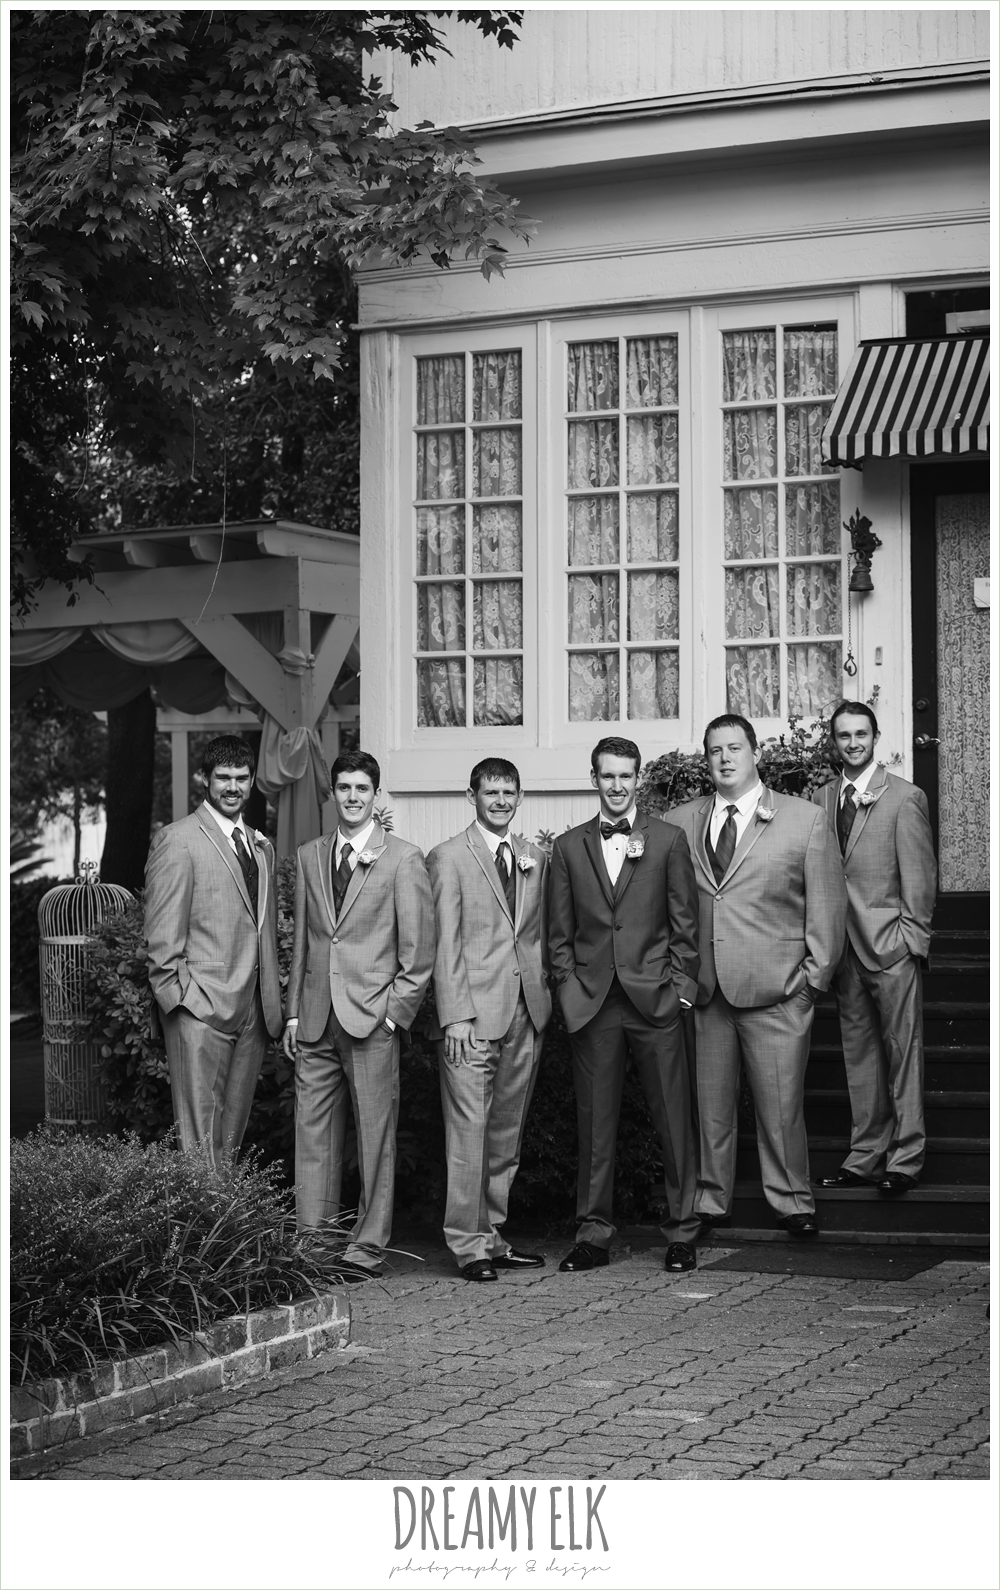 outdoor groom and groomsmen portraits, gray suits, heather's glen summer wedding photo, houston, texas {dreamy elk photography and design}